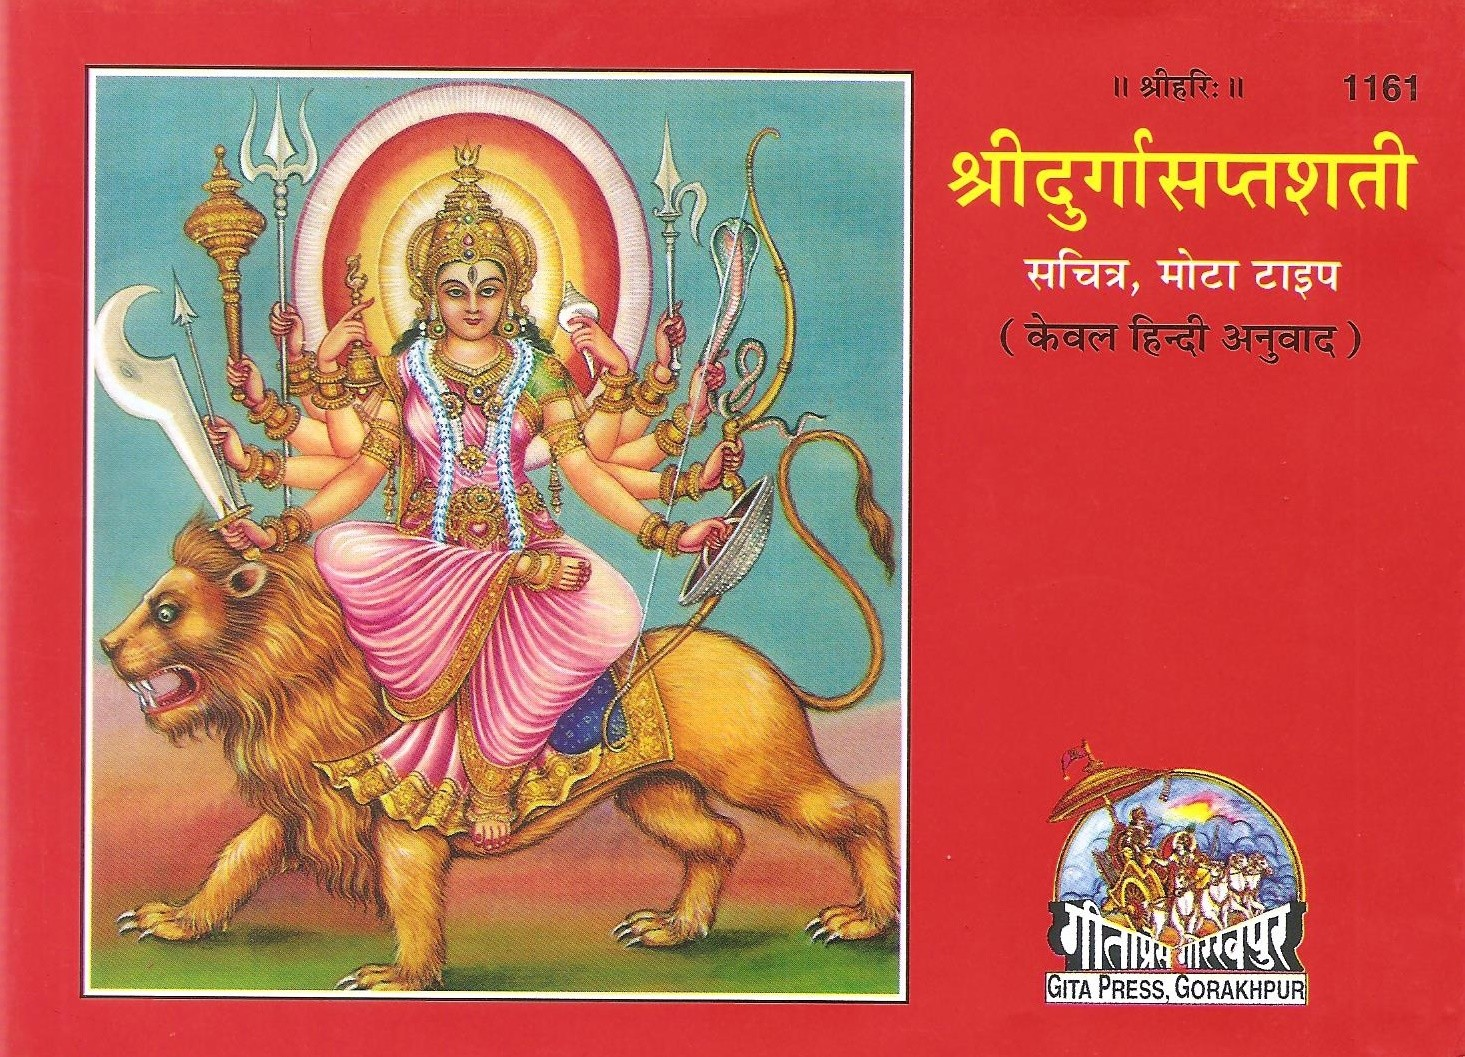 Shri bhagwat geeta book in hindi free download